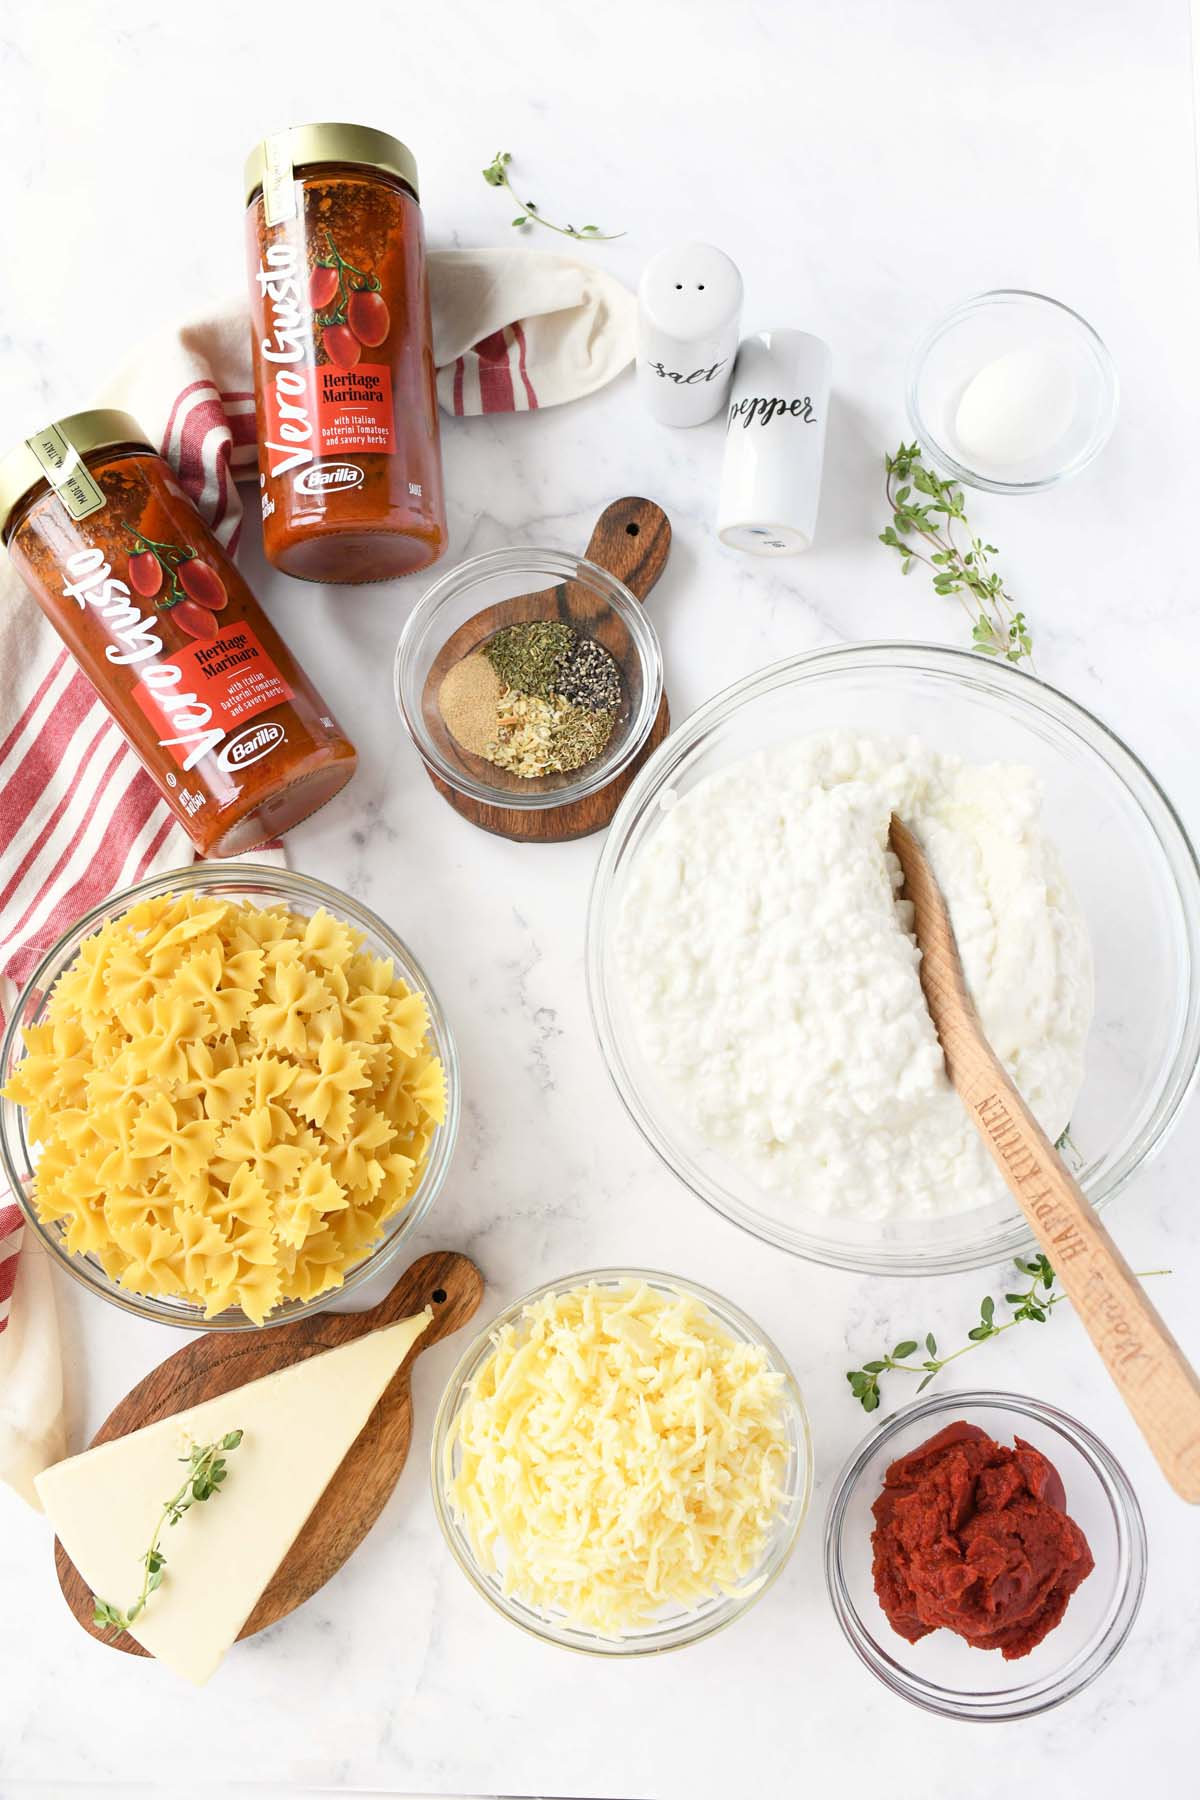 Four Cheese pasta ingredients on a white table.